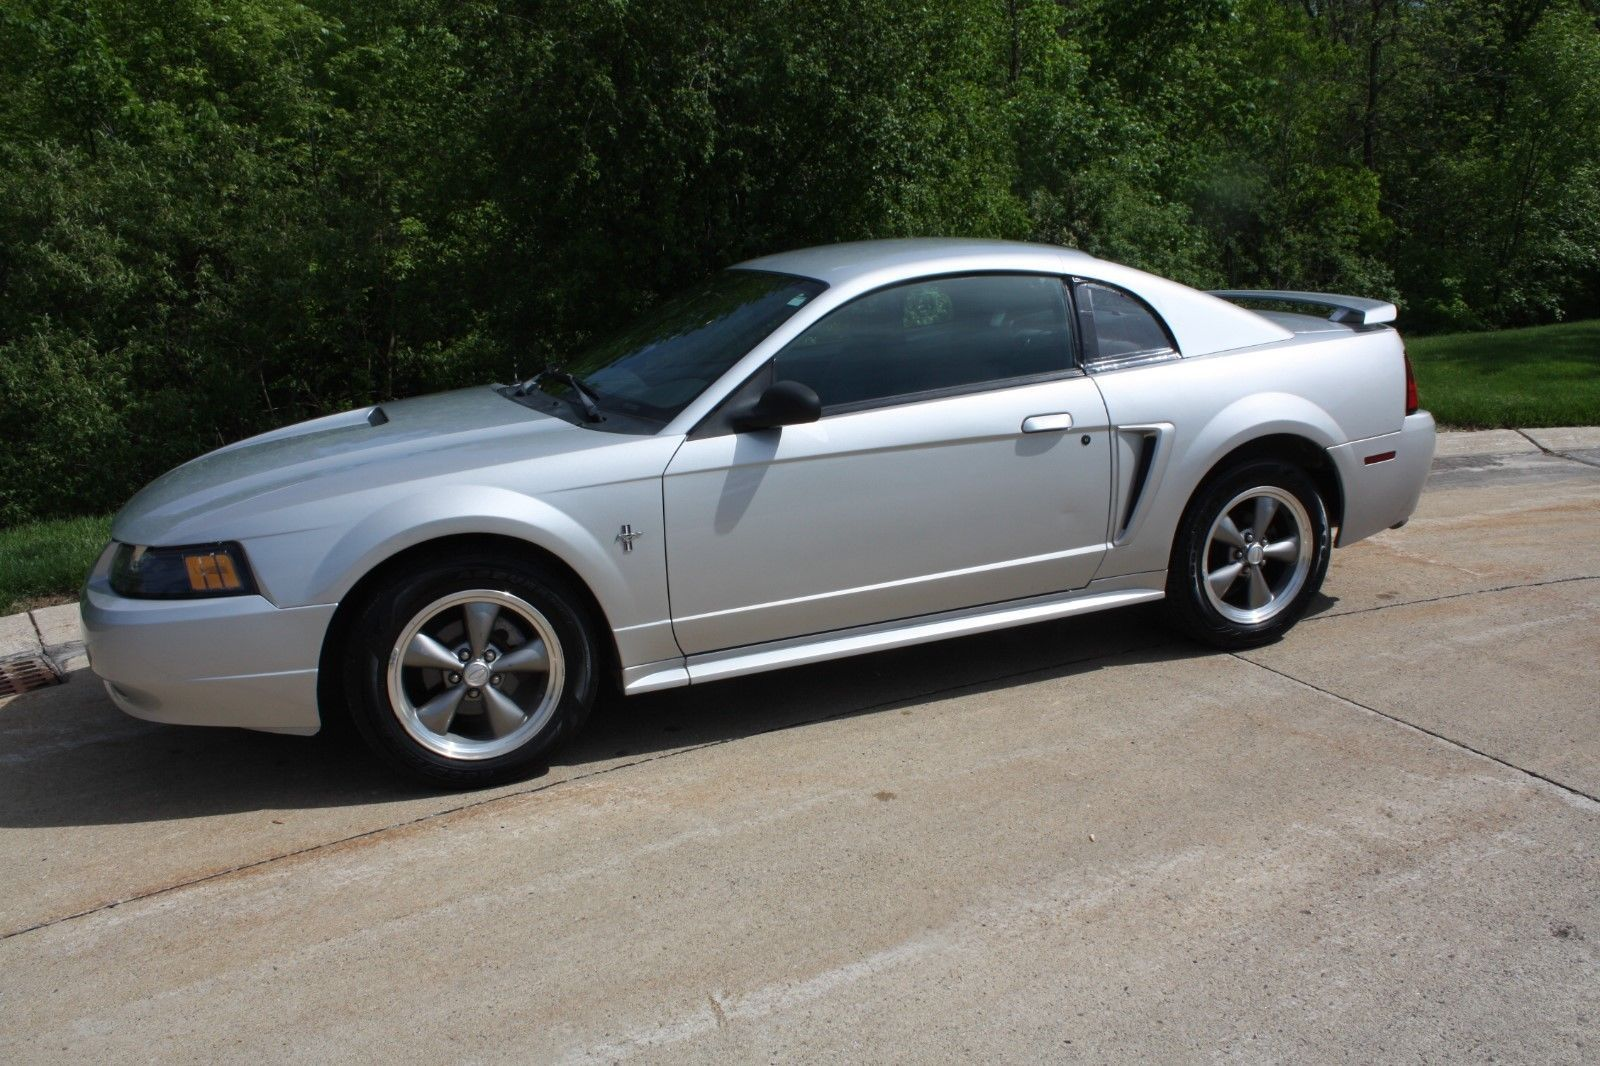 Ebay 2001 ford mustang 2001 ford mustang 3 8l v6 automatic overdrive air 6 cd changer silver fordmustang ford